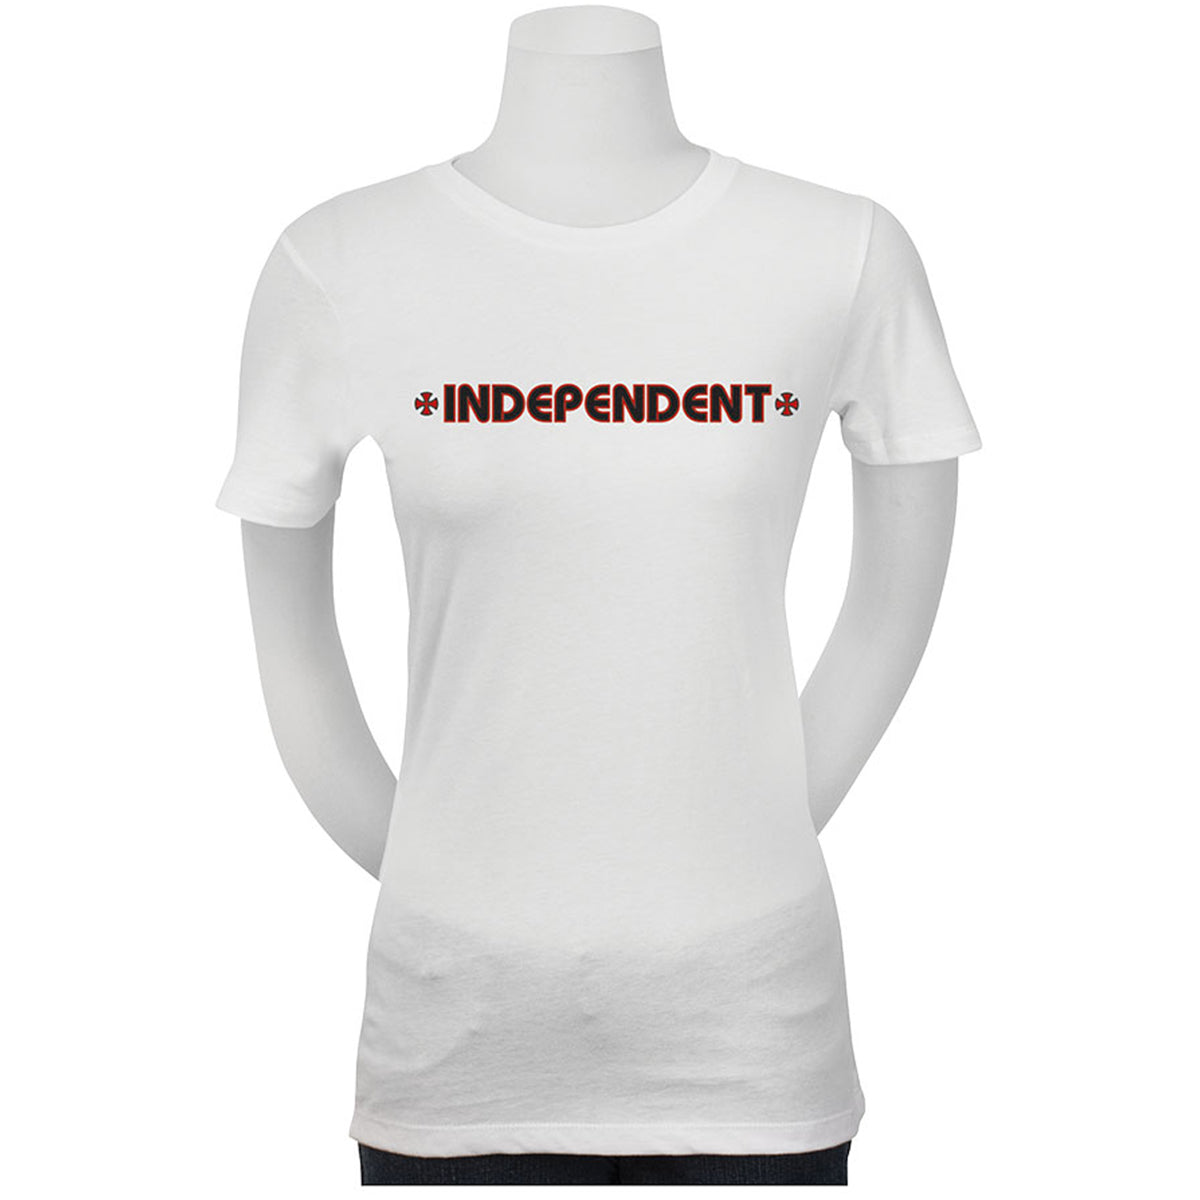 Independent Bar/Cross Fitted Youth Girls Short-Sleeve Shirts-44151985